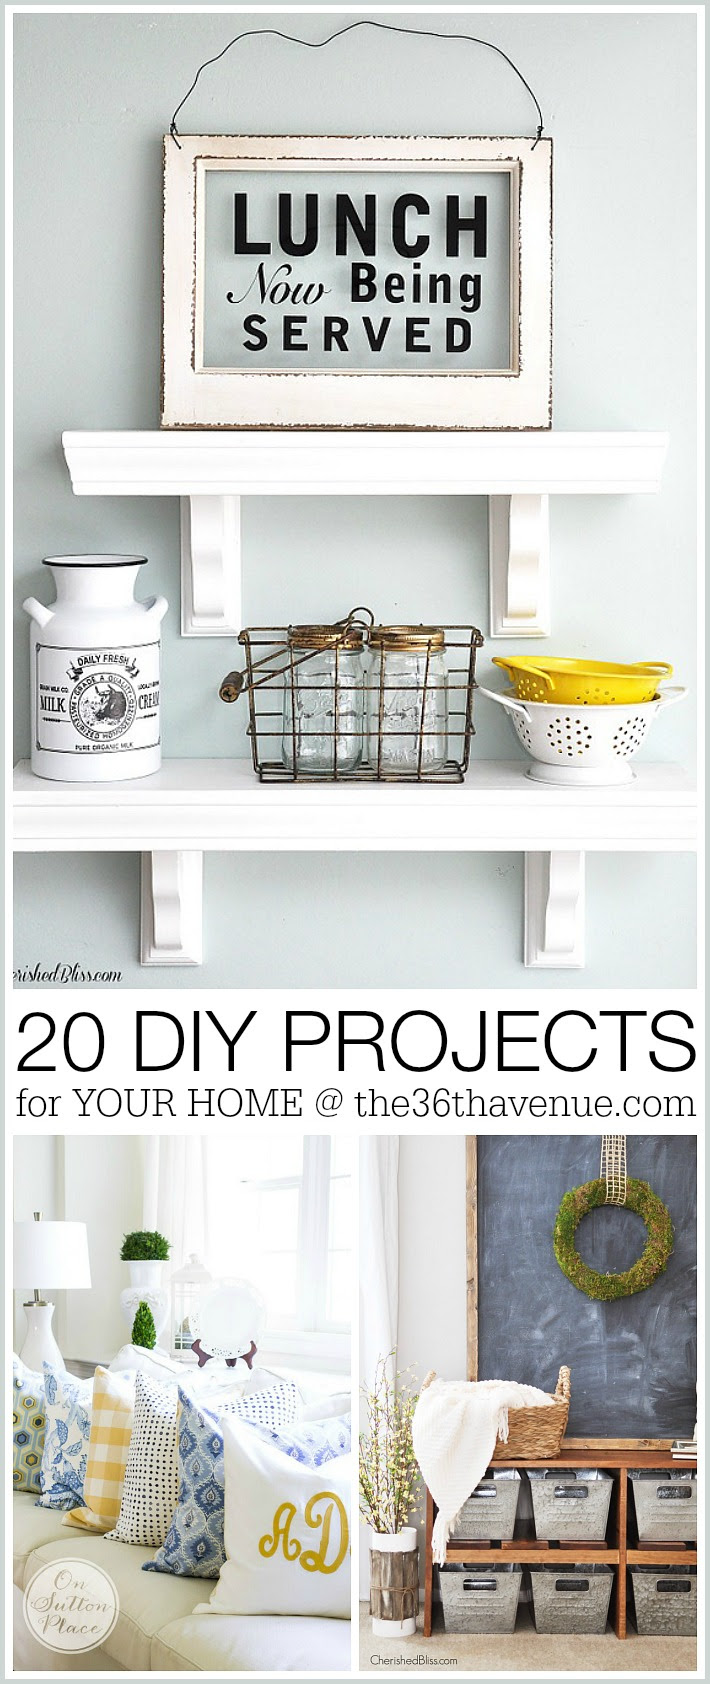 Home Decor DIY Projects | The 36th AVENUE